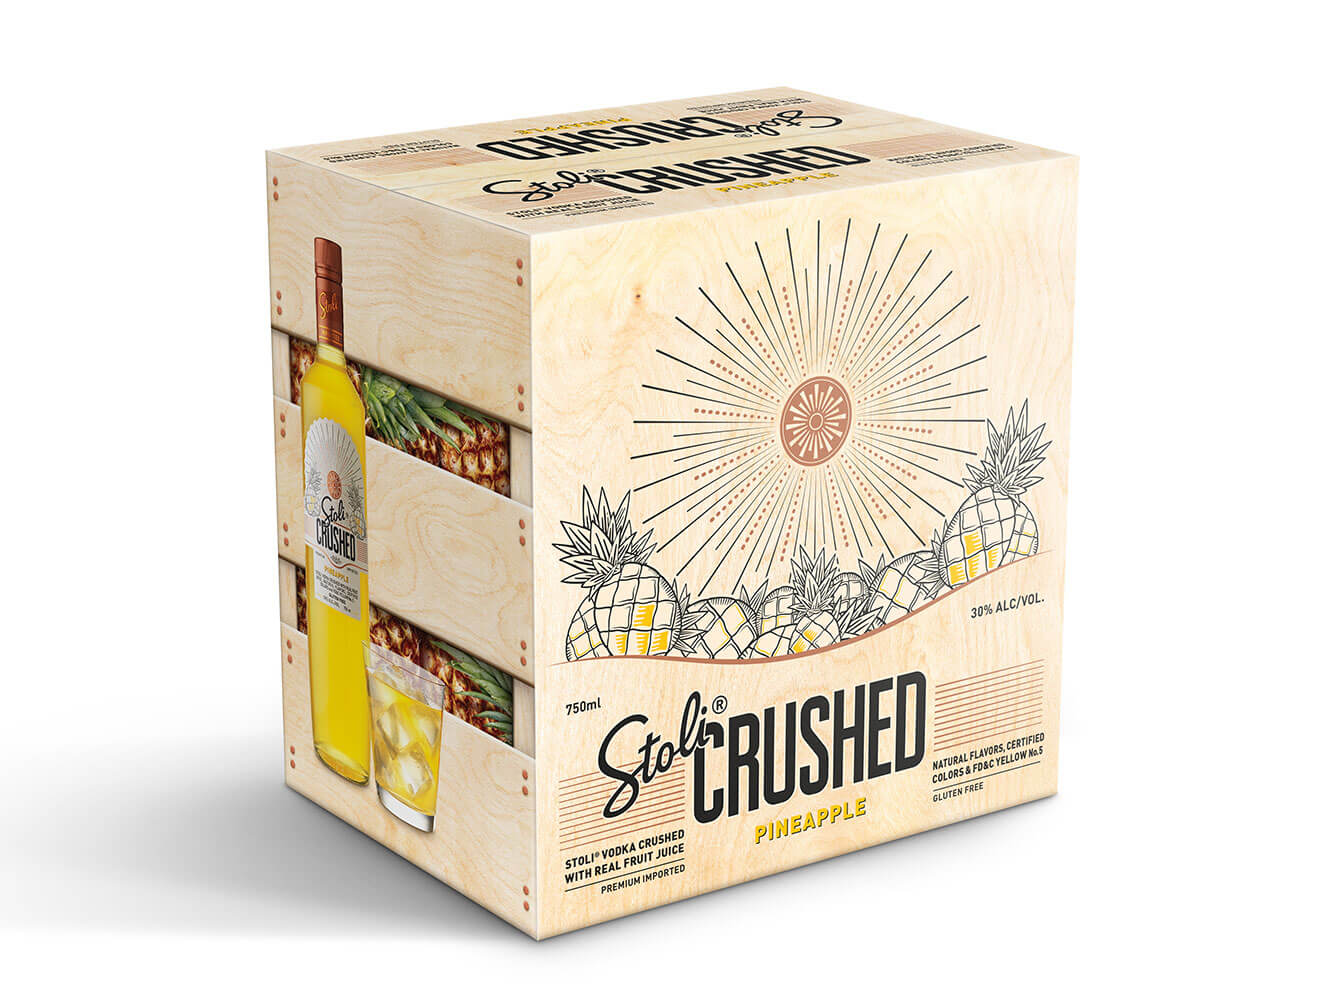 Stoli Crushed Pineapple Package